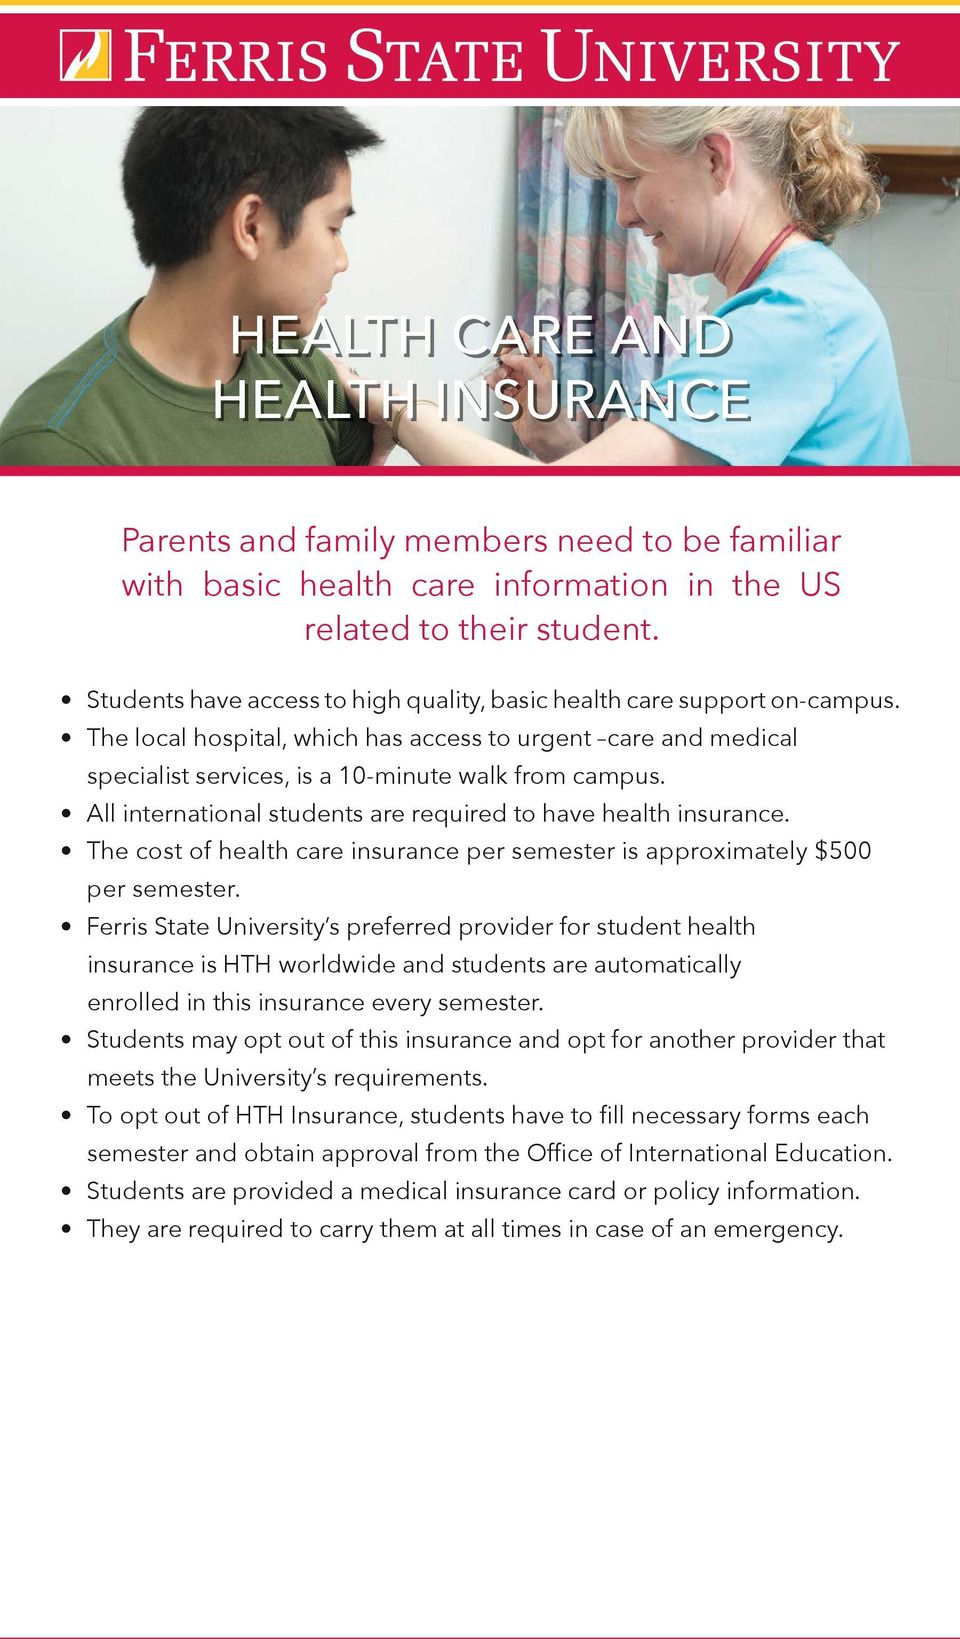 All international students are required to have health insurance. The cost of health care insurance per semester is approximately $500 per semester.